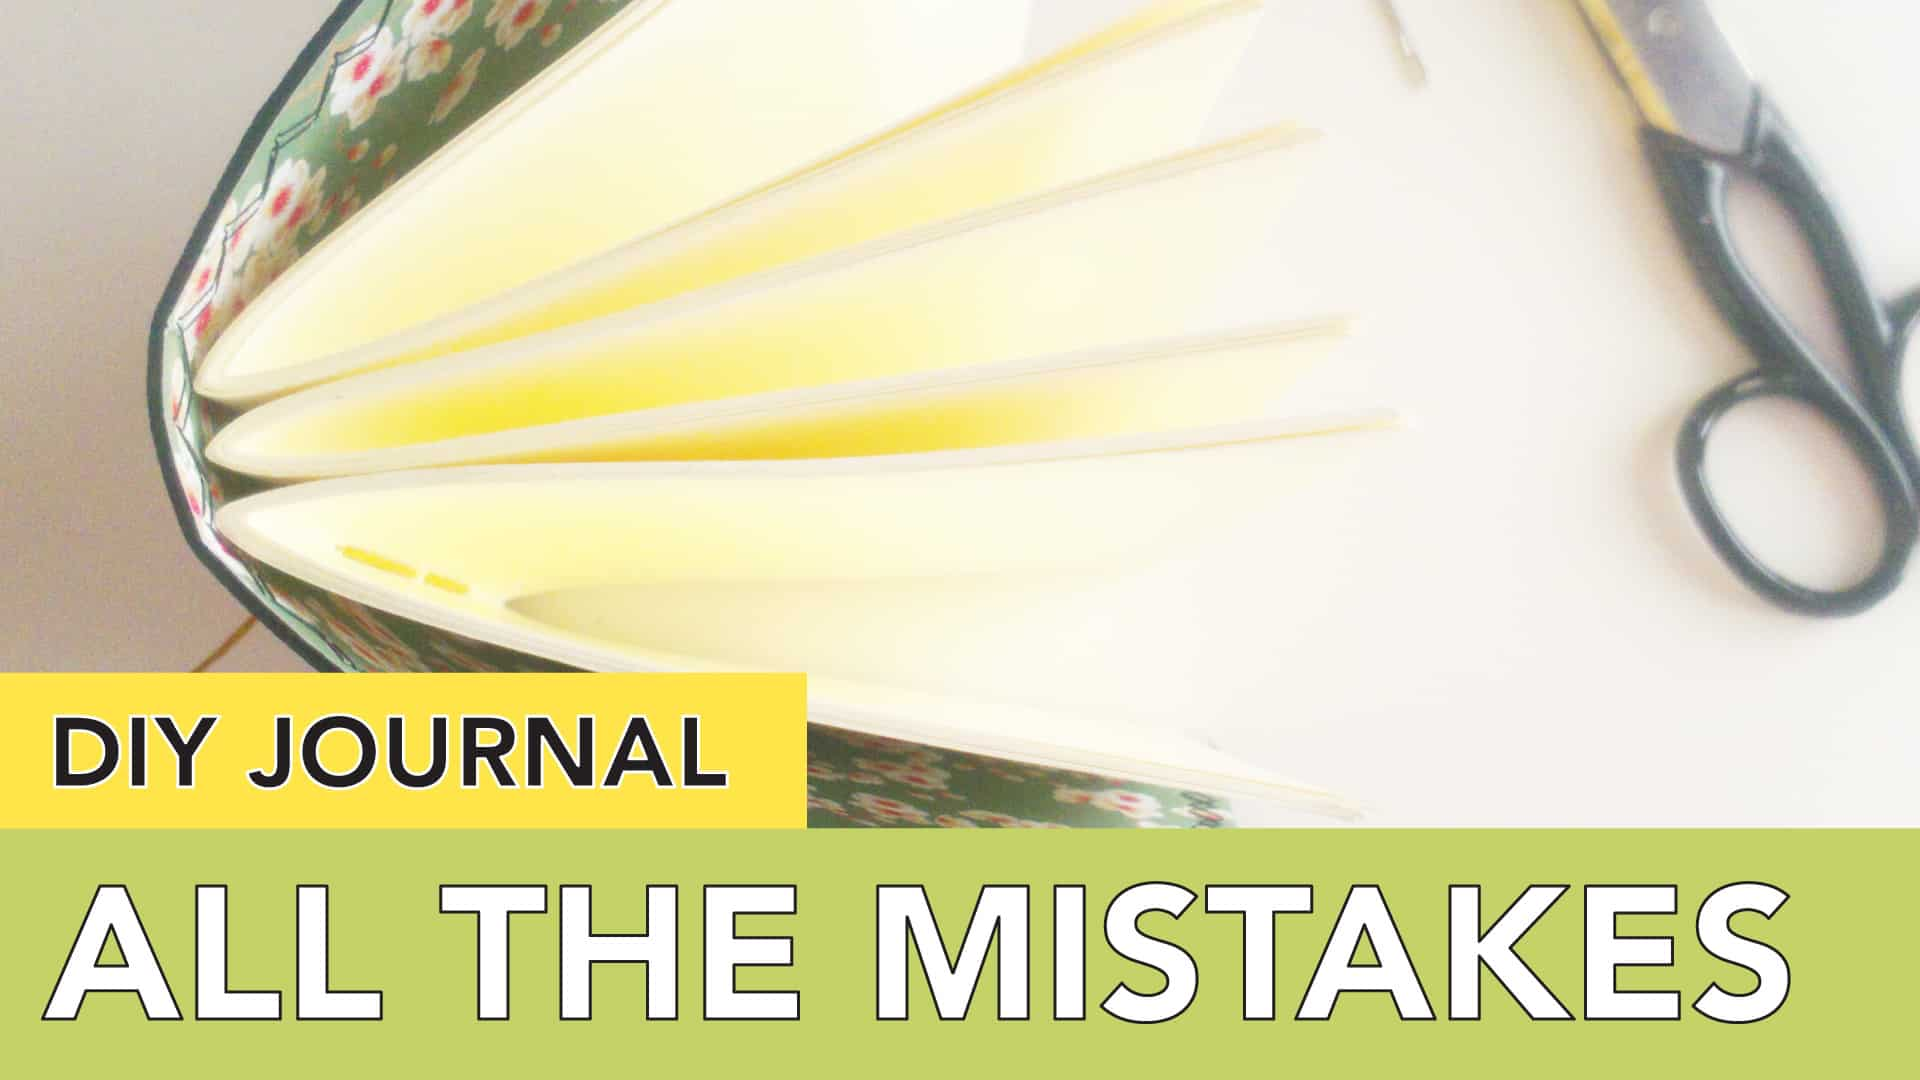 DIY journal with all the mistakes